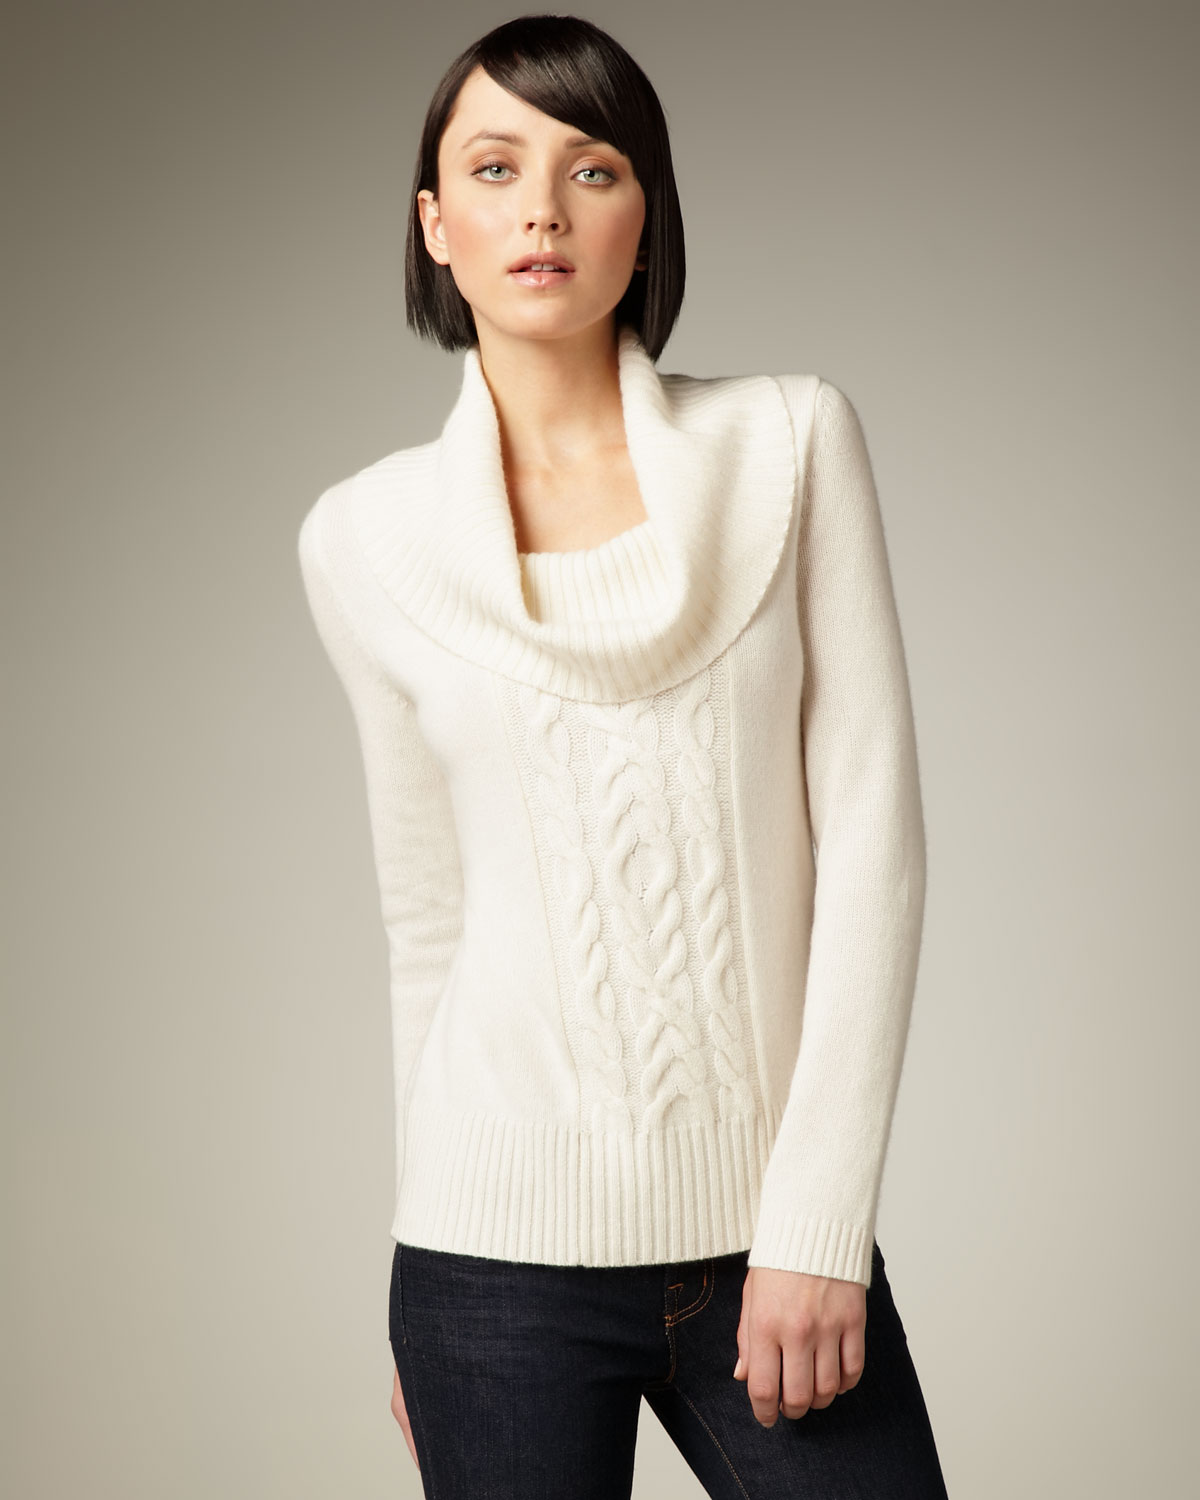 Neiman marcus Cowl-neck Cashmere Sweater in White | Lyst